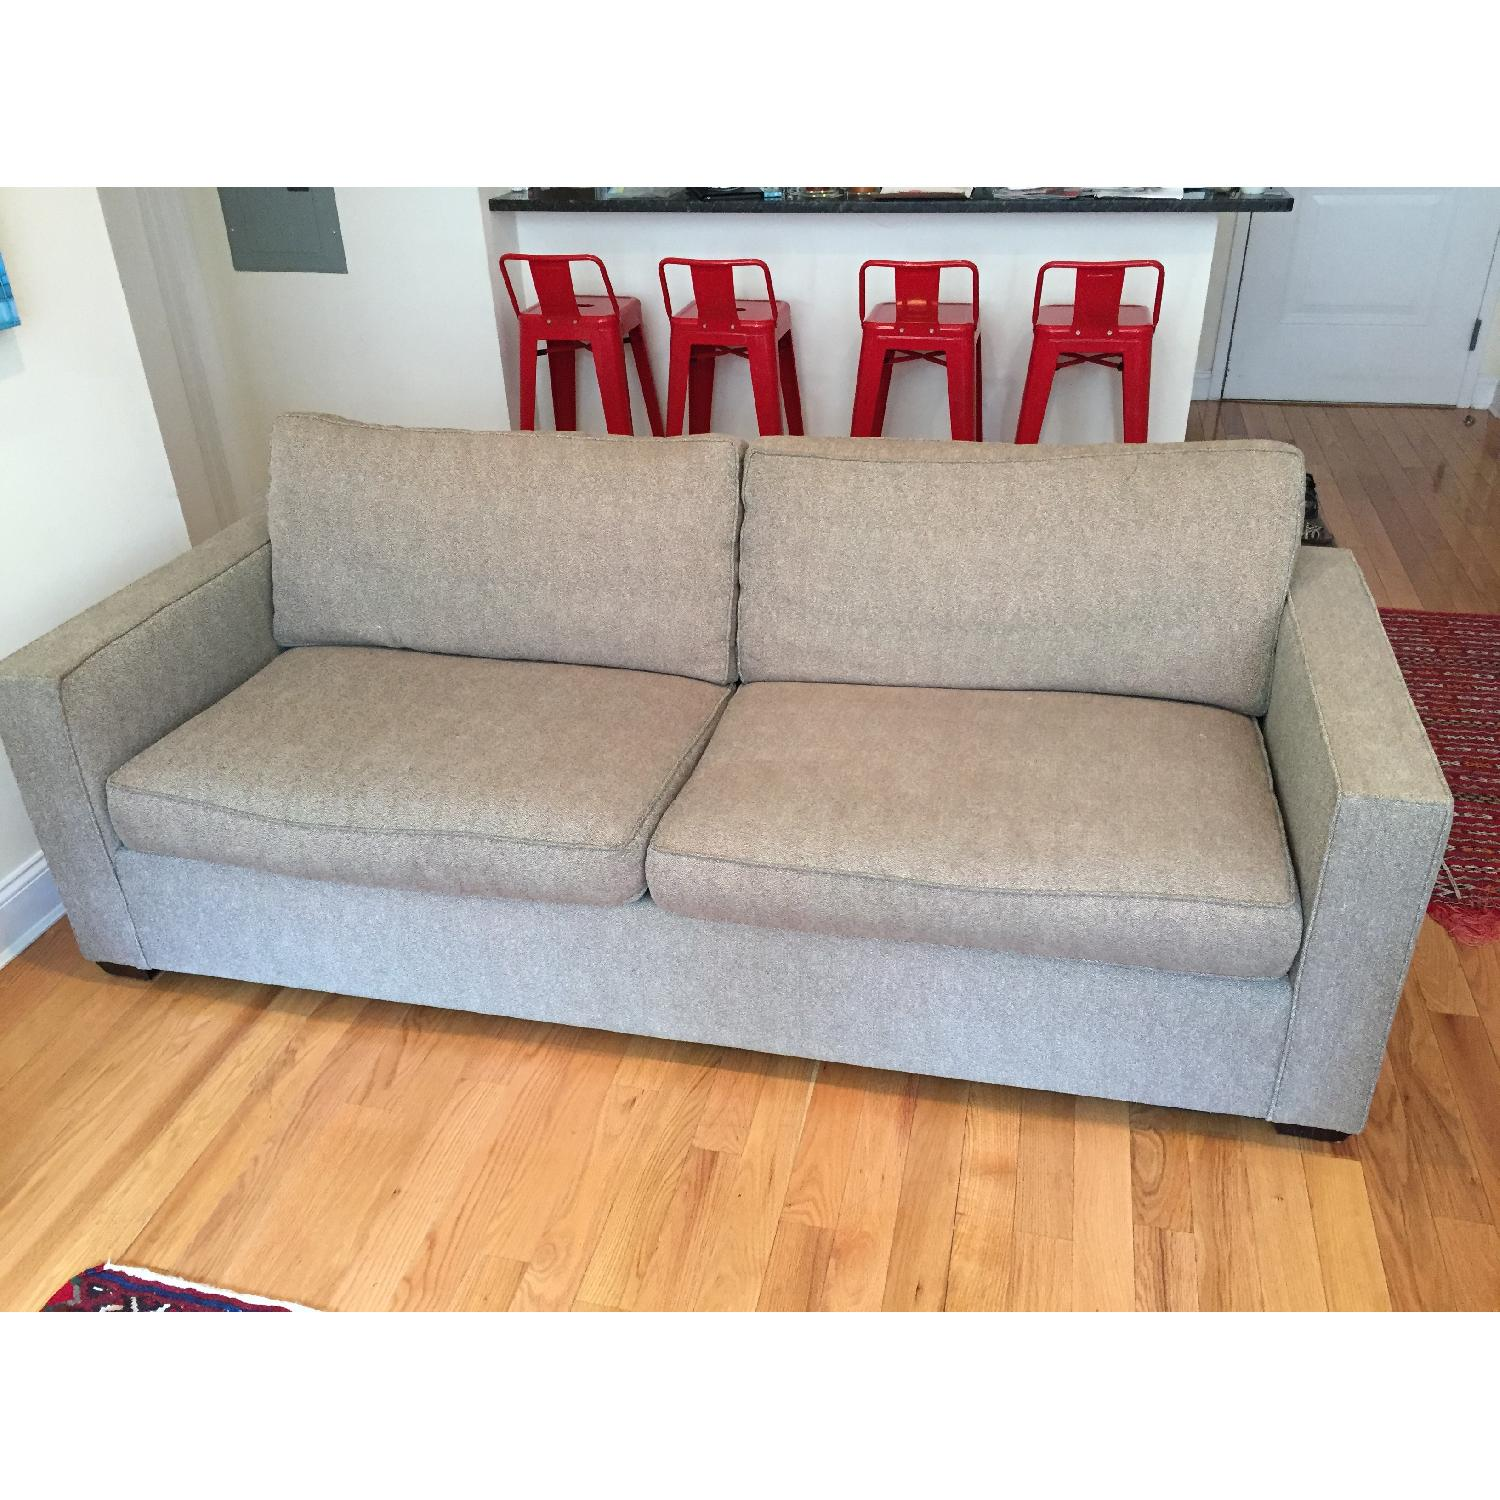 Room & Board 2 Seater Couch - image-2